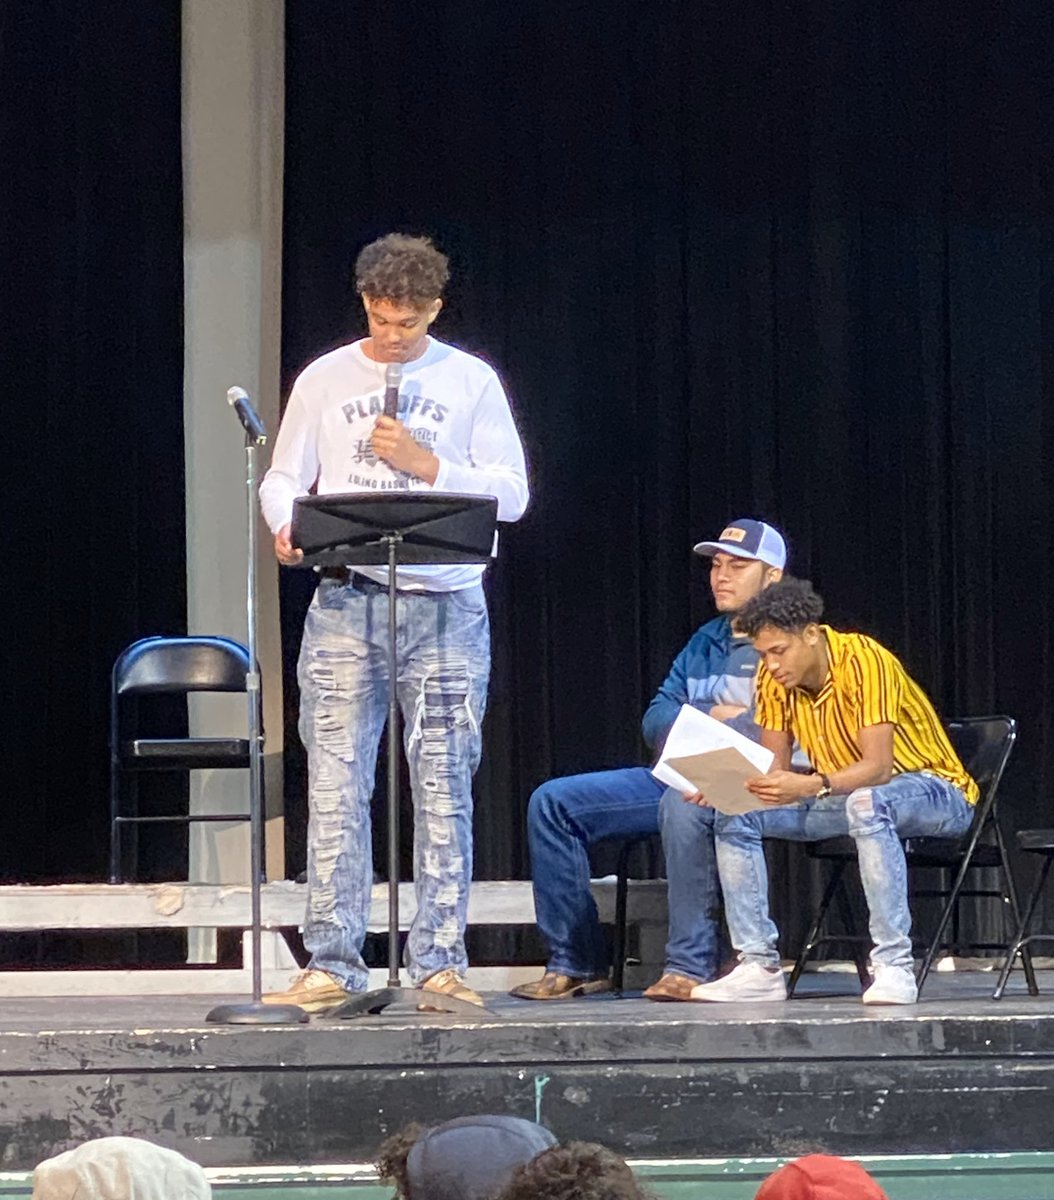 """Trent Scott and Jeremiah Solis read """"How Long, Not Long"""" and """"I Have a Dream"""" by Dr. Martin Luther King. We are honored students. Thank you for reminding us of his message."""